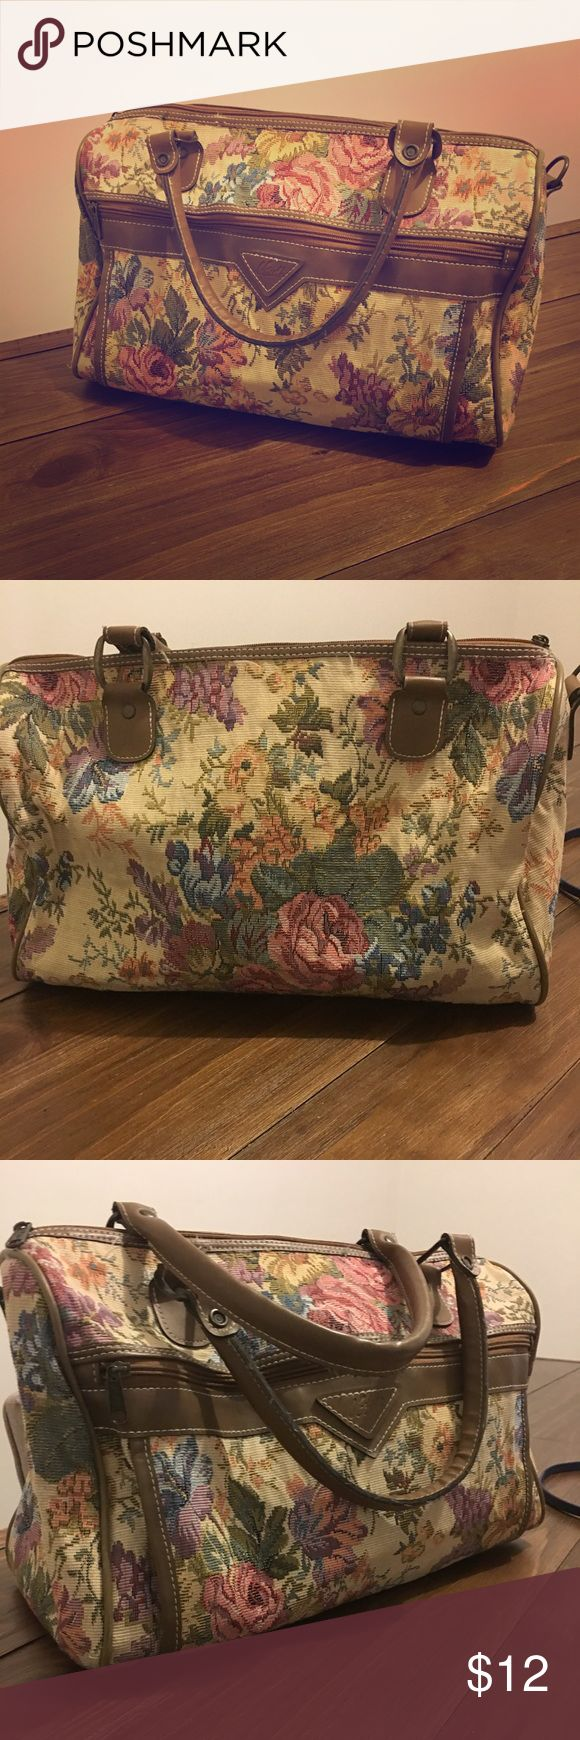 Women's floral bag Item is used, however in good condition. Can be used as a mini duffel bag, etc. verdi Bags Travel Bags